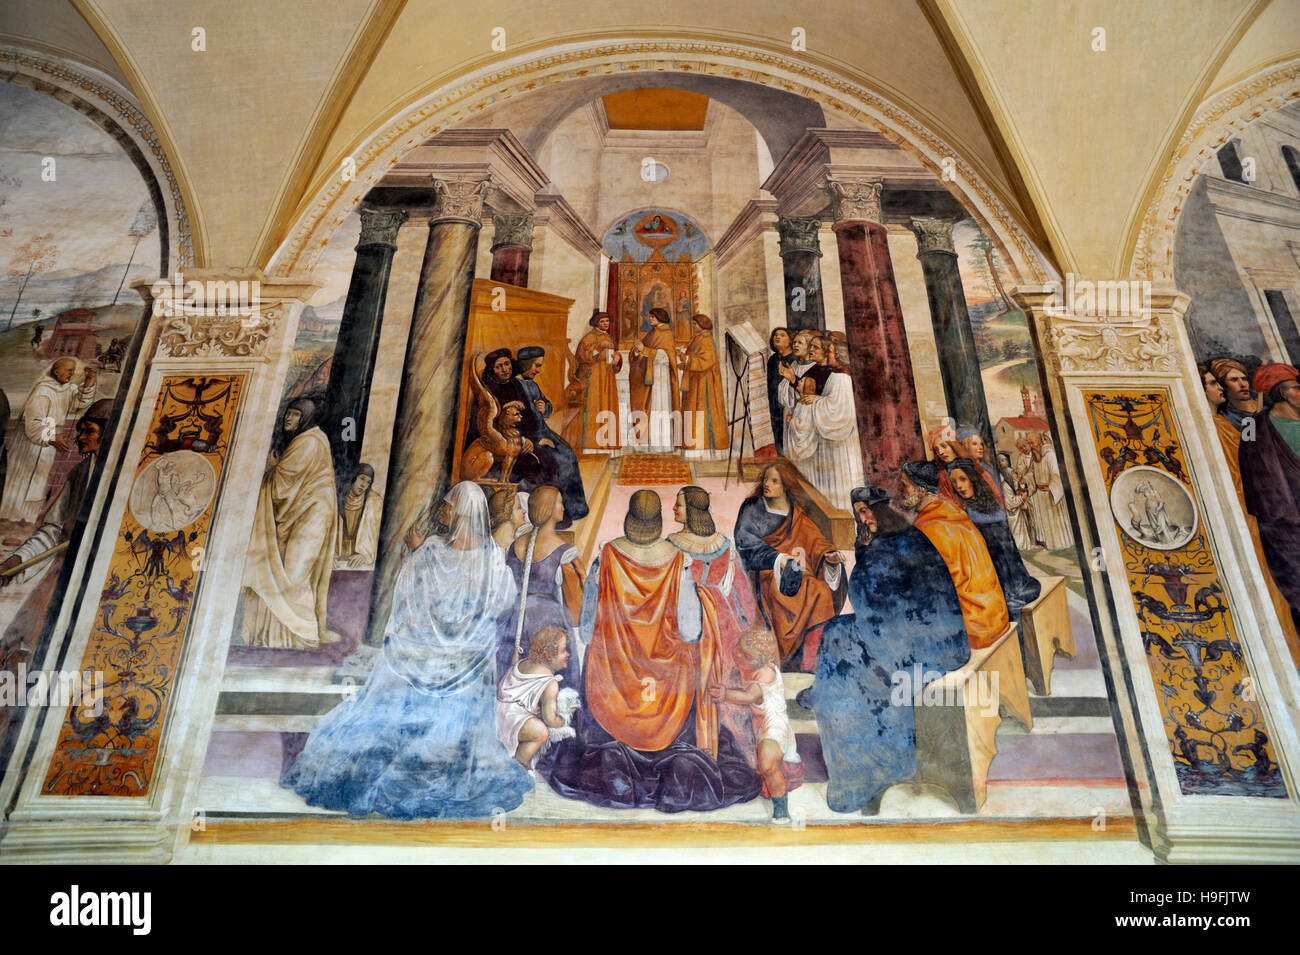 renaissance frescos, st Benedict life, painting by Il Sodoma, Chiostro Grande (Great Cloister), Abbey of Monte Oliveto Stock Photo